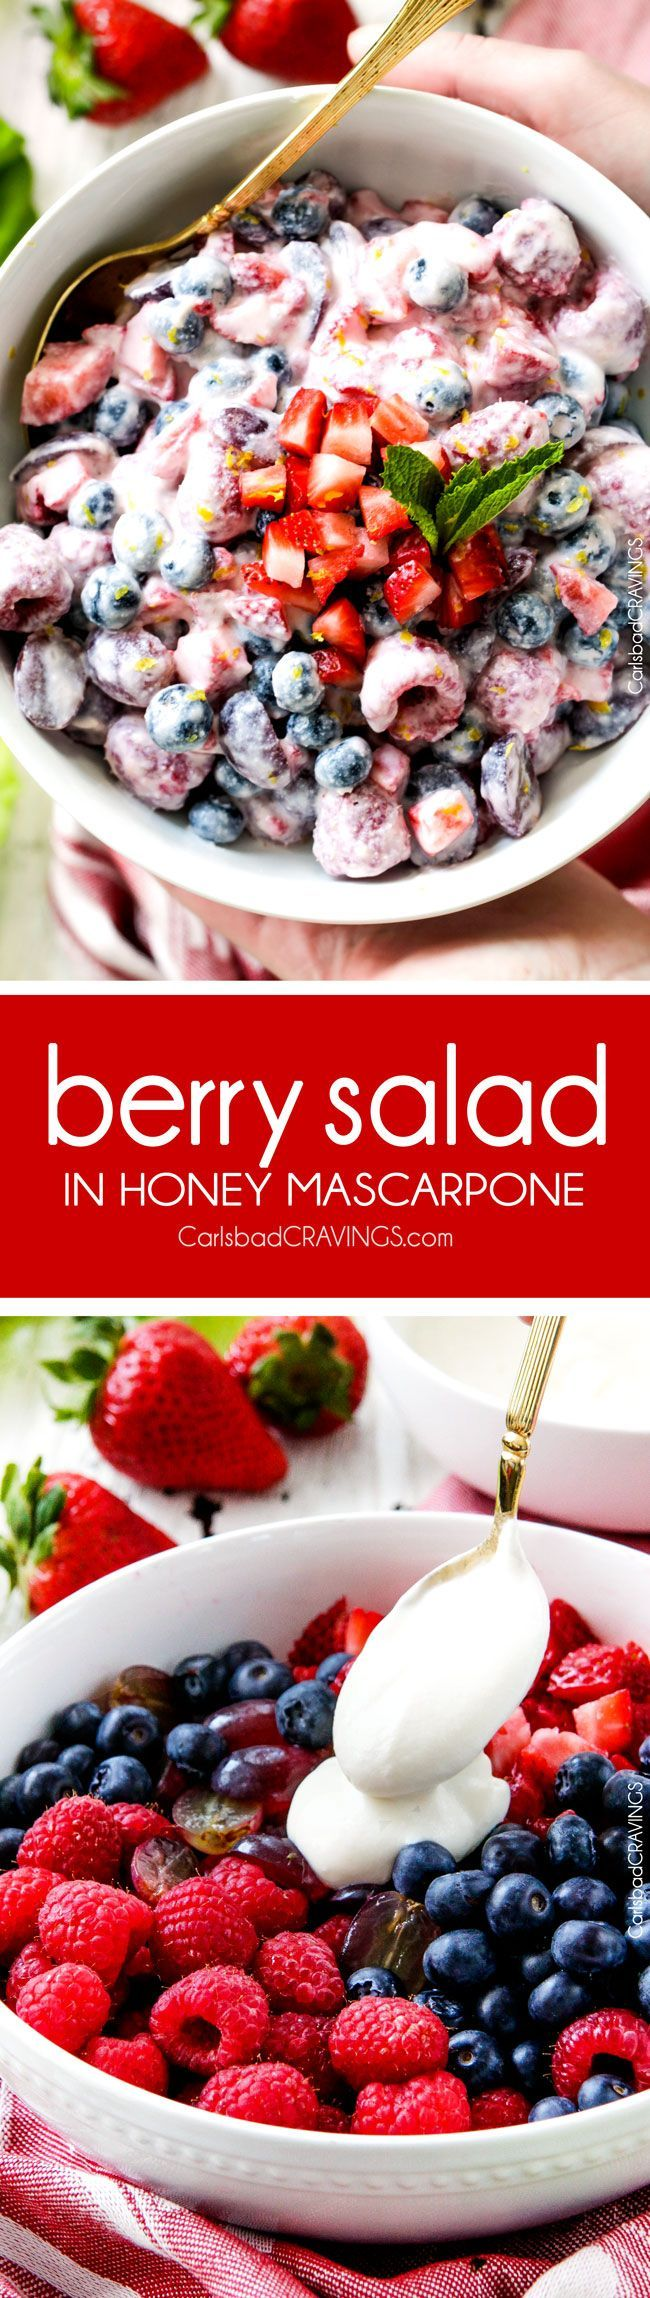 Fresh Berry Salad is one of the BEST fruit salads you will ever make! Smothered in sweet and tangy, incredibly creamy Honey Mascarpone that takes minutes to whip up and tastes incredible! Perfect for brunch, barbecues and all your pool side parties!